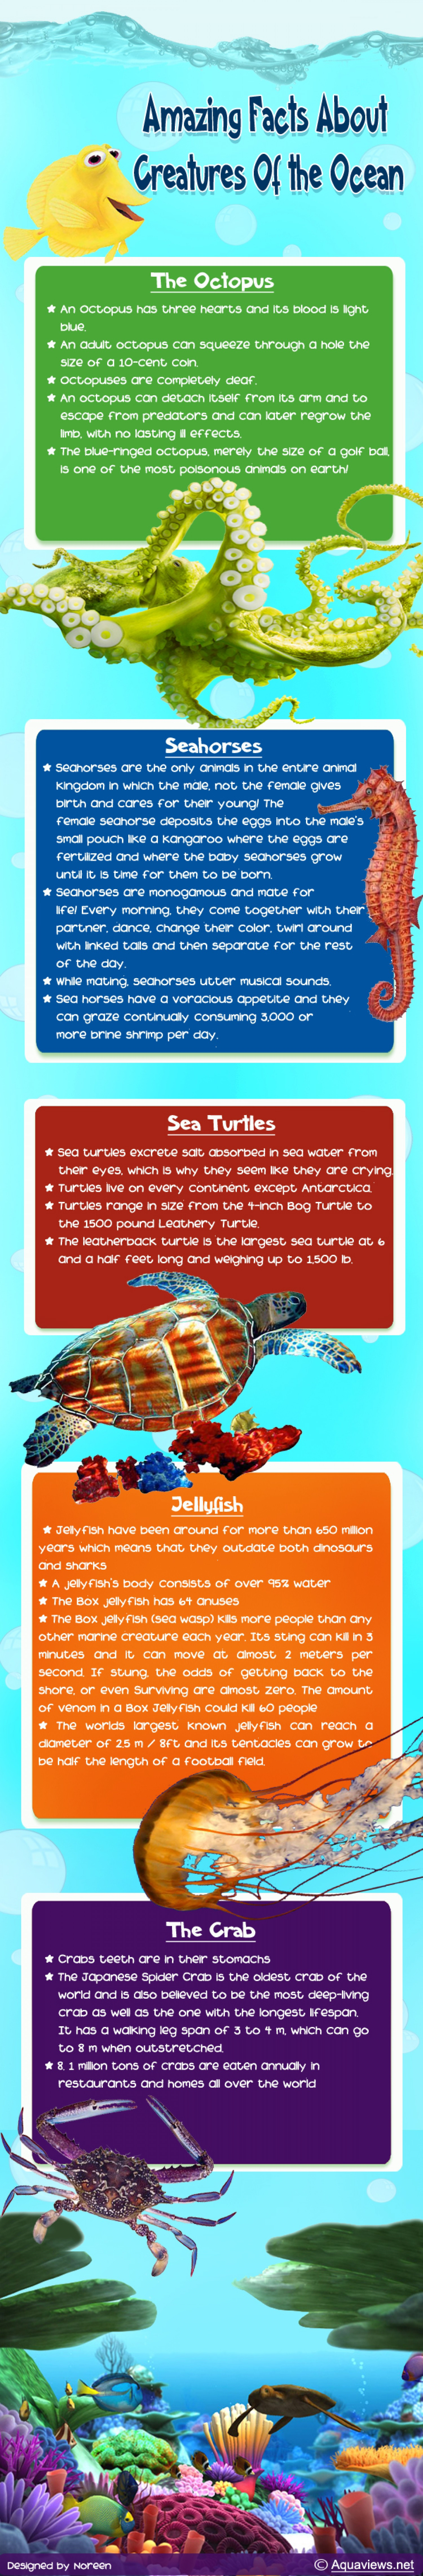 amazing-facts-about-creatures-of-the-ocean